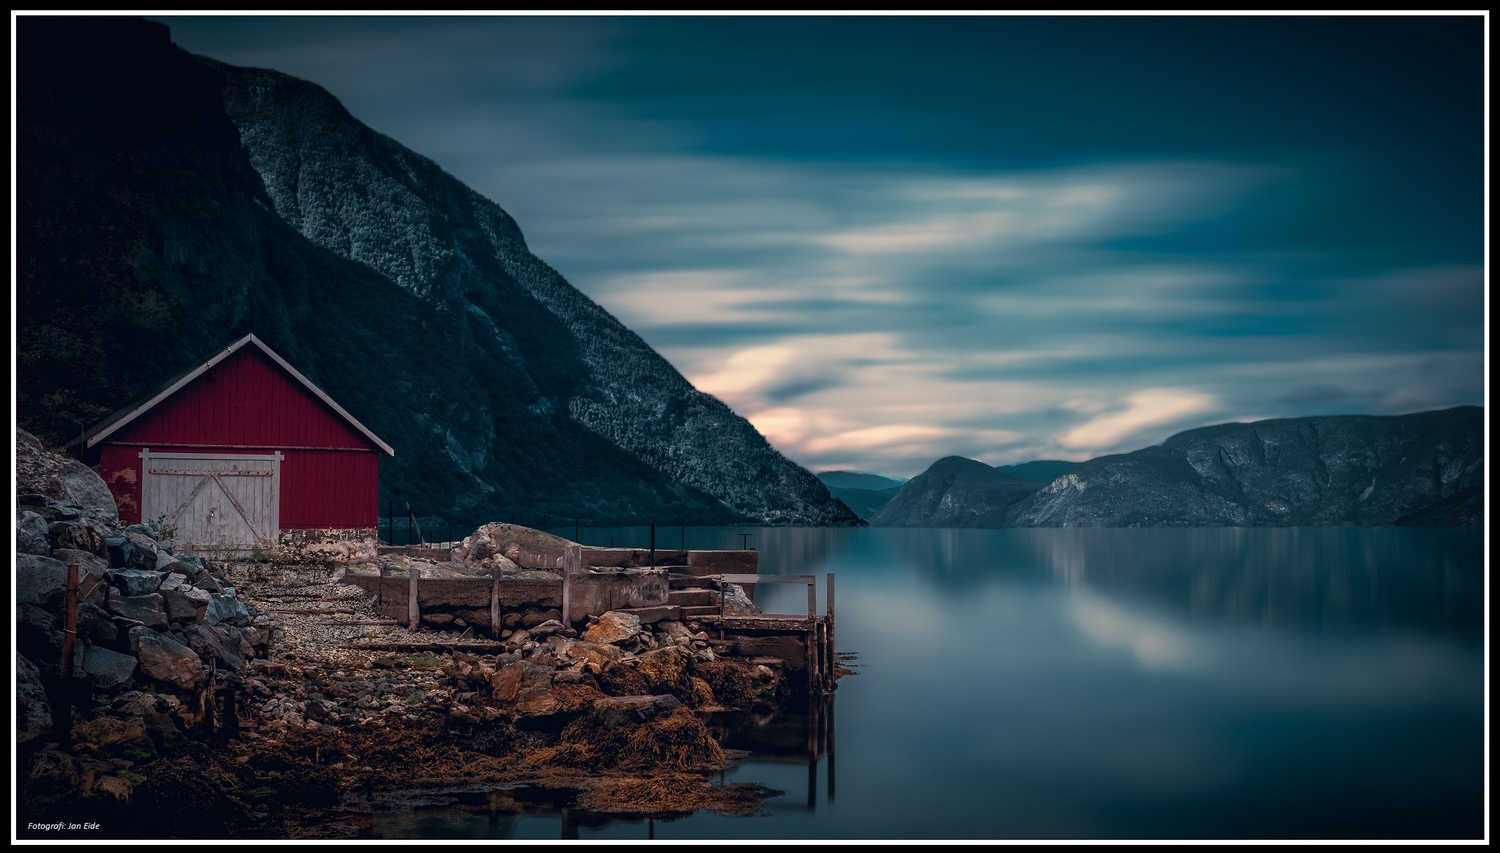 Boathouse in Lærdal by Jan Eide